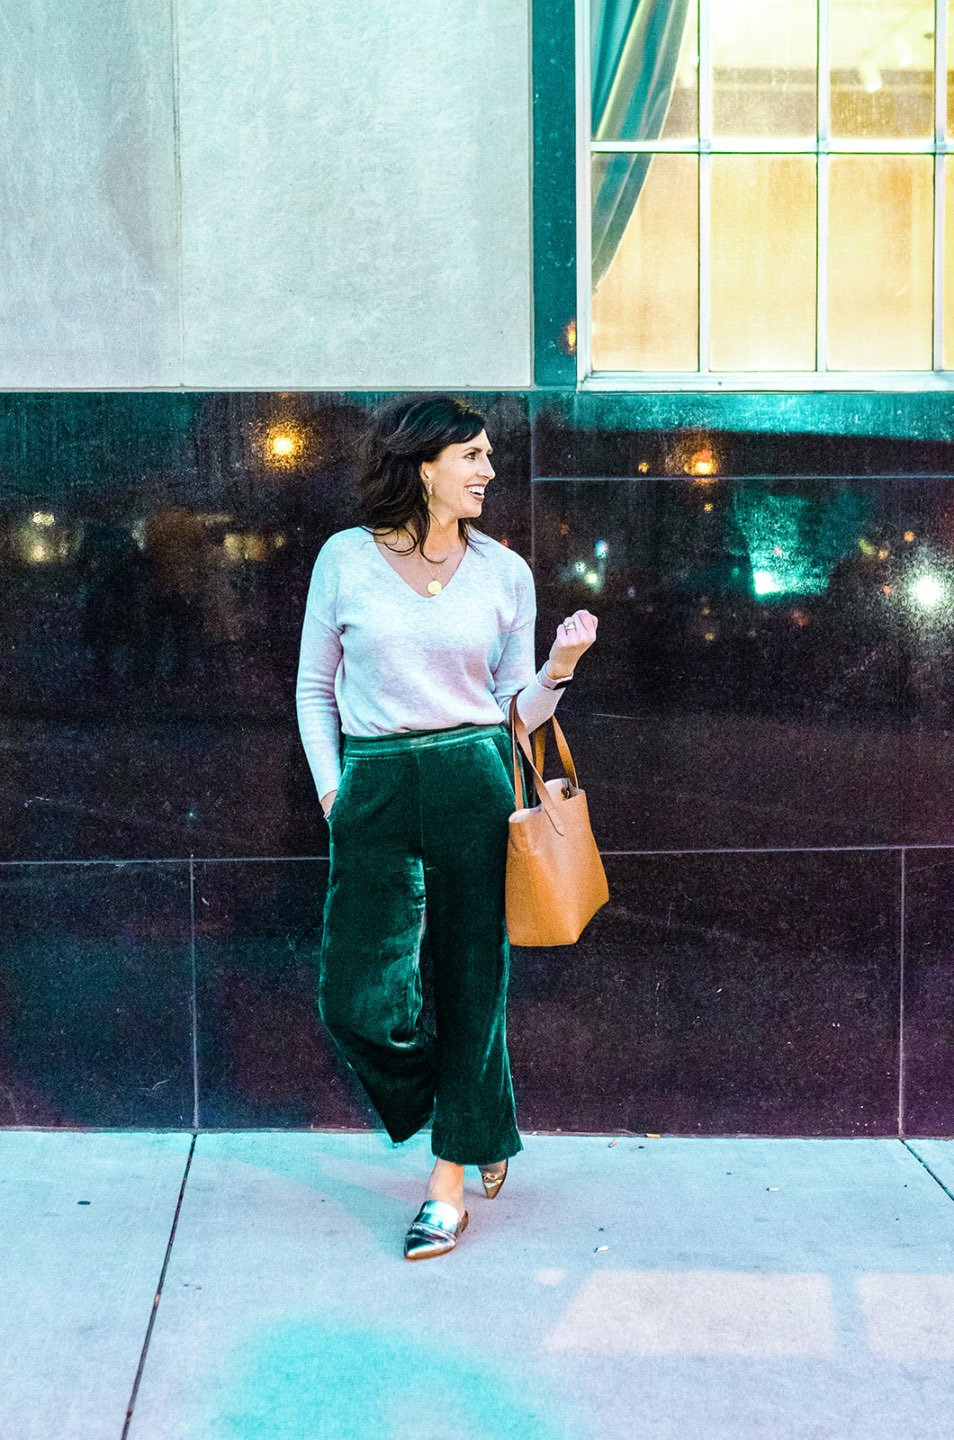 Holiday Style and Outfit Inspiration - I'm Fixin' To - @mbg0112 | Holiday Style and Outfit Inspiration by popular North Carolina fashion blog, I'm Fixin' To: image of a woman outside wearing a Loft FLECKED LUXE KNIT V-NECK SWEATER, J. Crew Pull-on Peyton pant in velvet, metallic mules, Cuyana Small Structured Leather Tote, Nordstrom David Yurman Cable Classic Buckle Bracelet with 18K Gold, Nordstrom David Yurman Cable Classics Bracelet with 14K Gold, Nordstrom Mignonne Gavigan Earrings, and Sephora Bite Beauty lipstick.